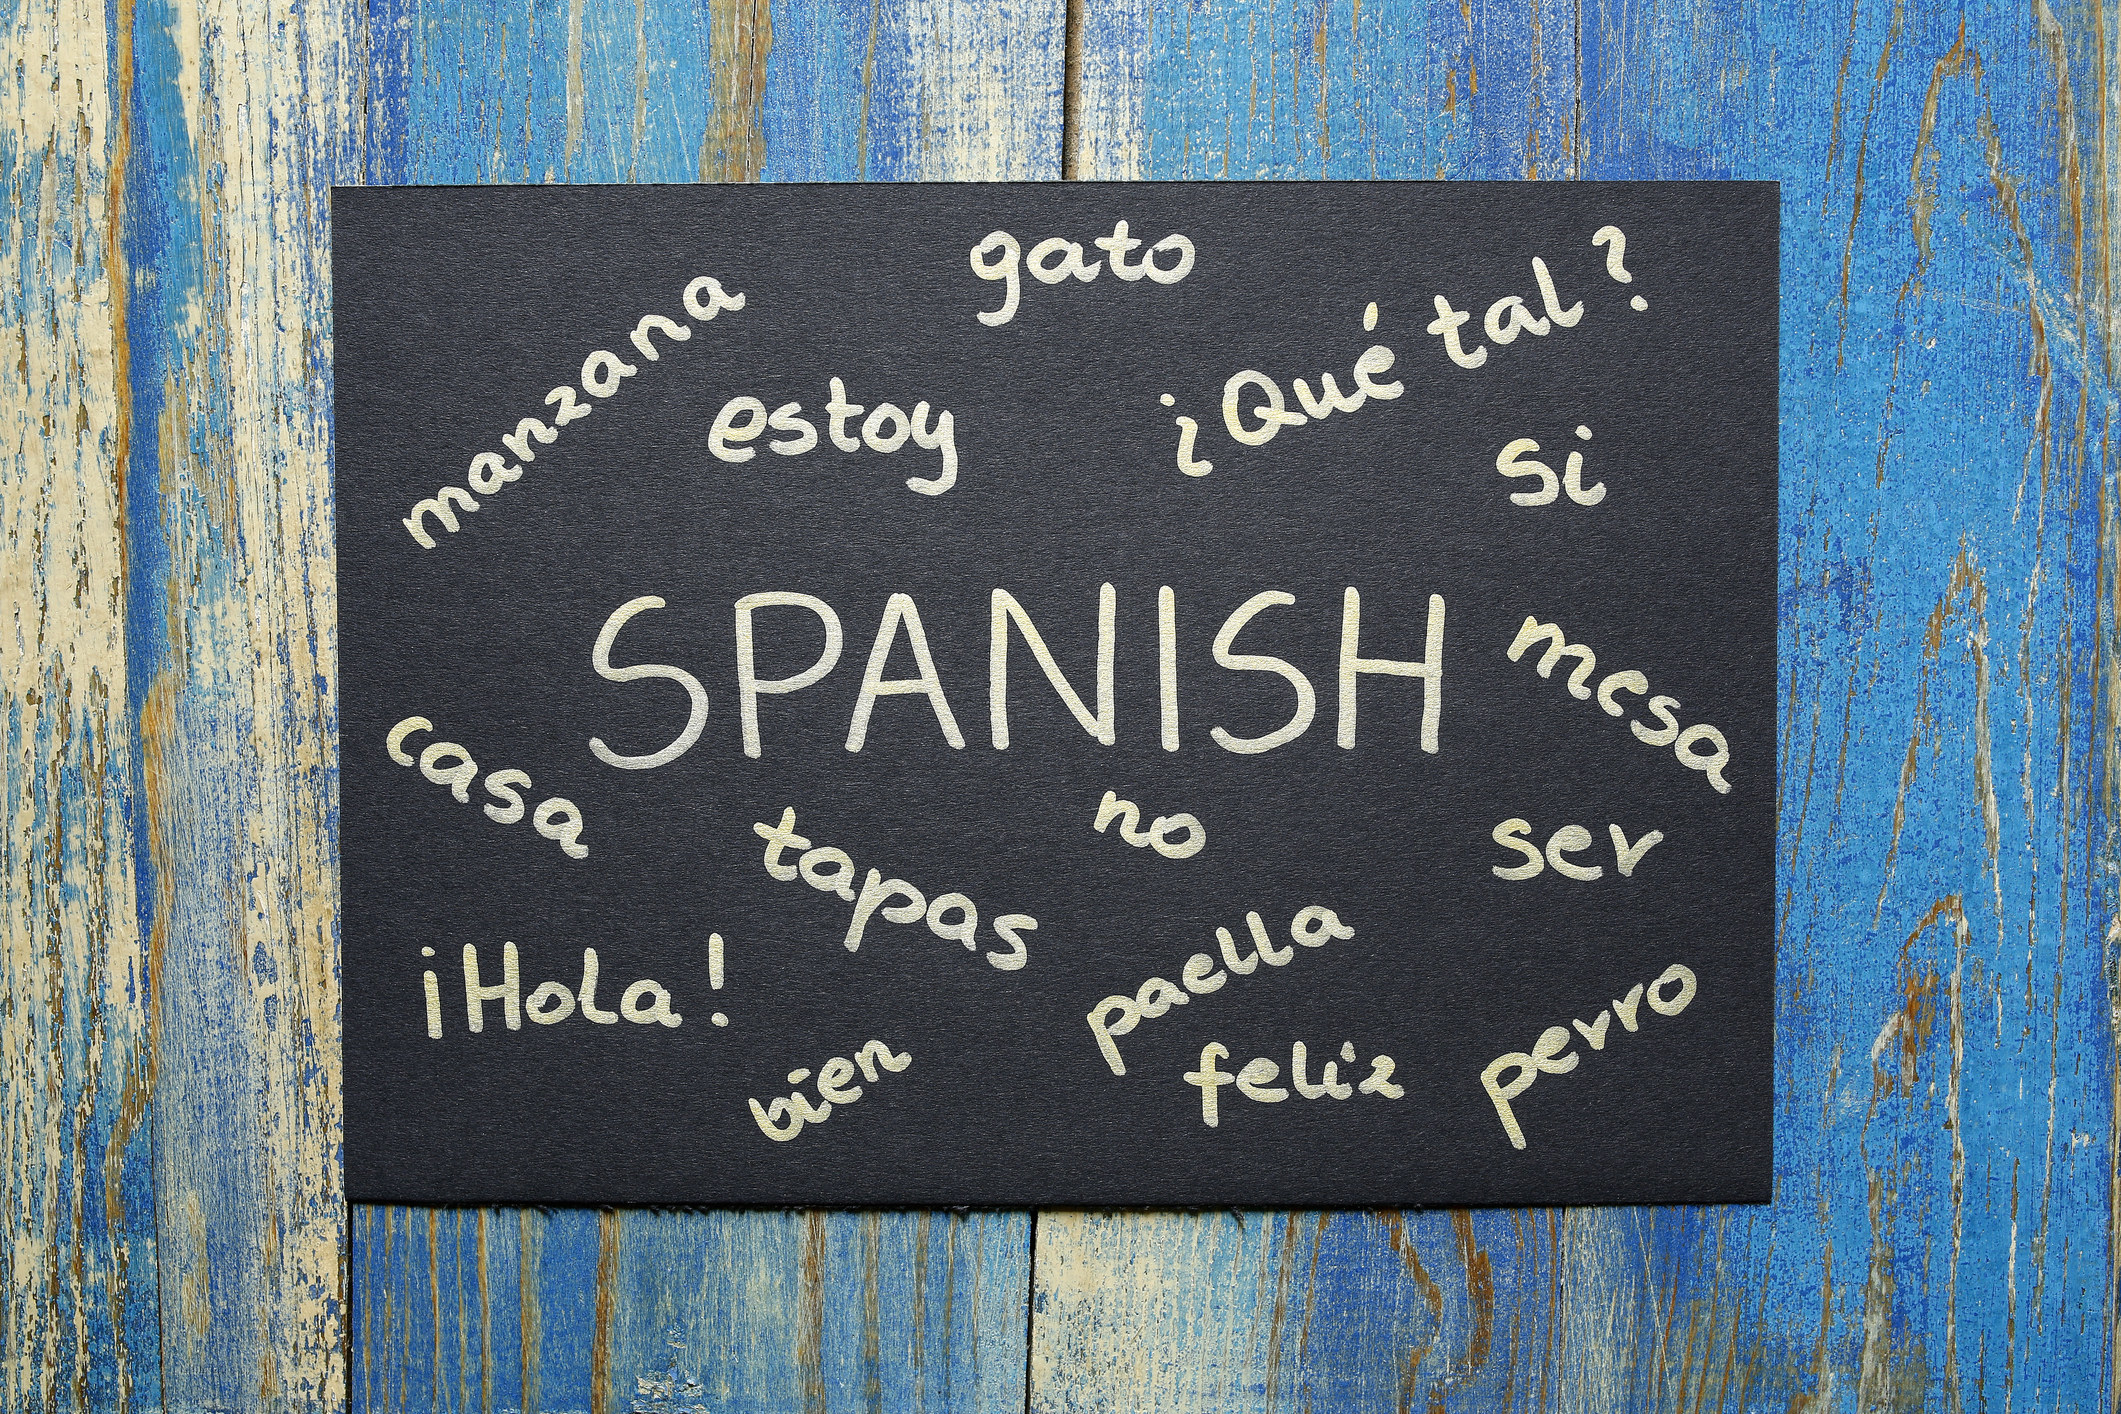 """A blackboard with a variety of Spanish words written on them, like """"Hola,"""" """"estoy,"""" and """"perro"""""""